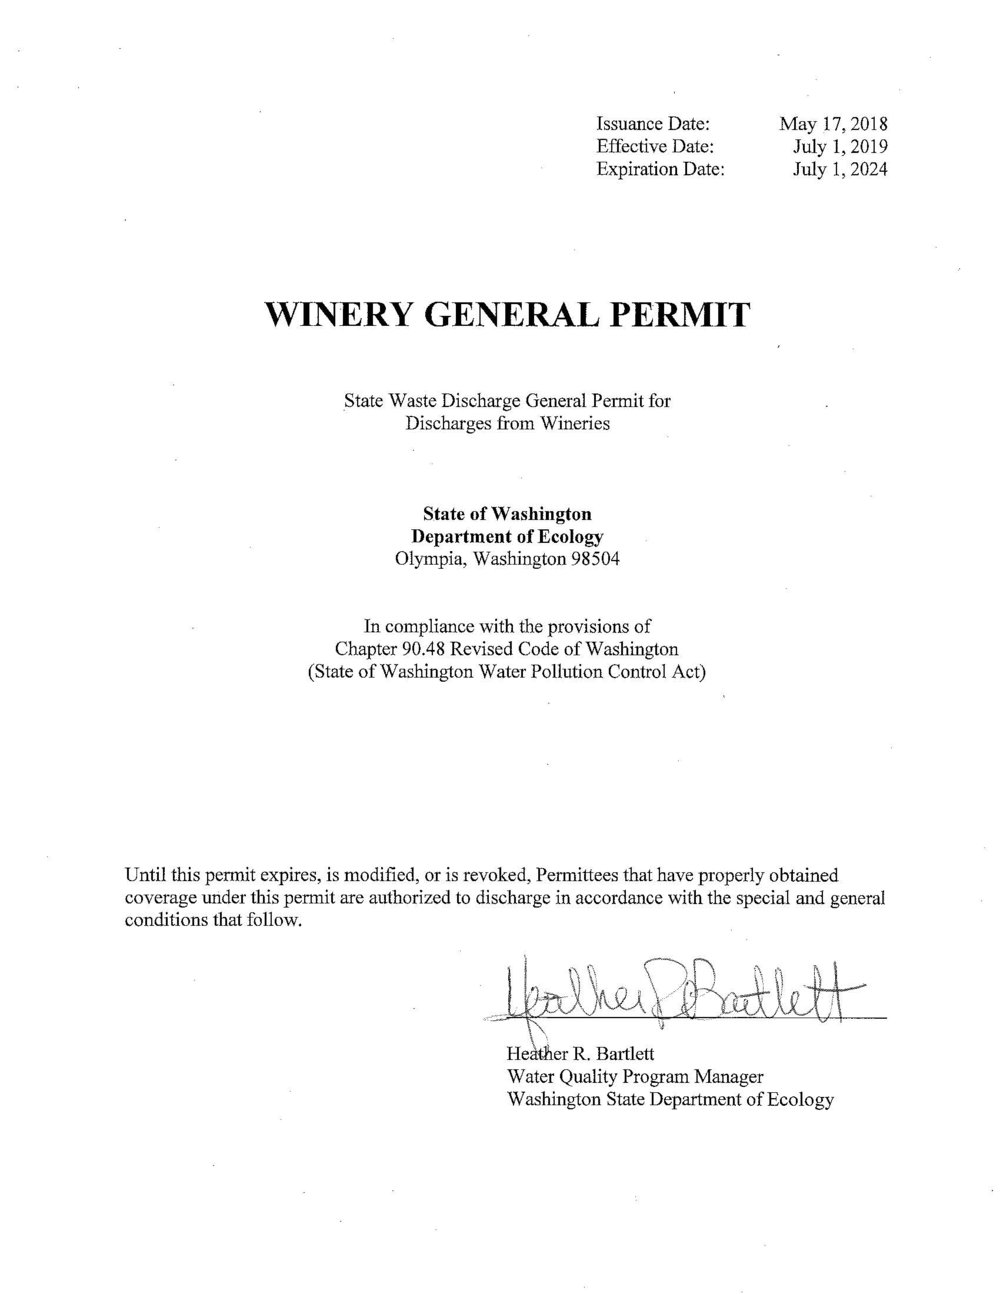 Pages from Winery_General_Permit_Final_Draft2018.jpg